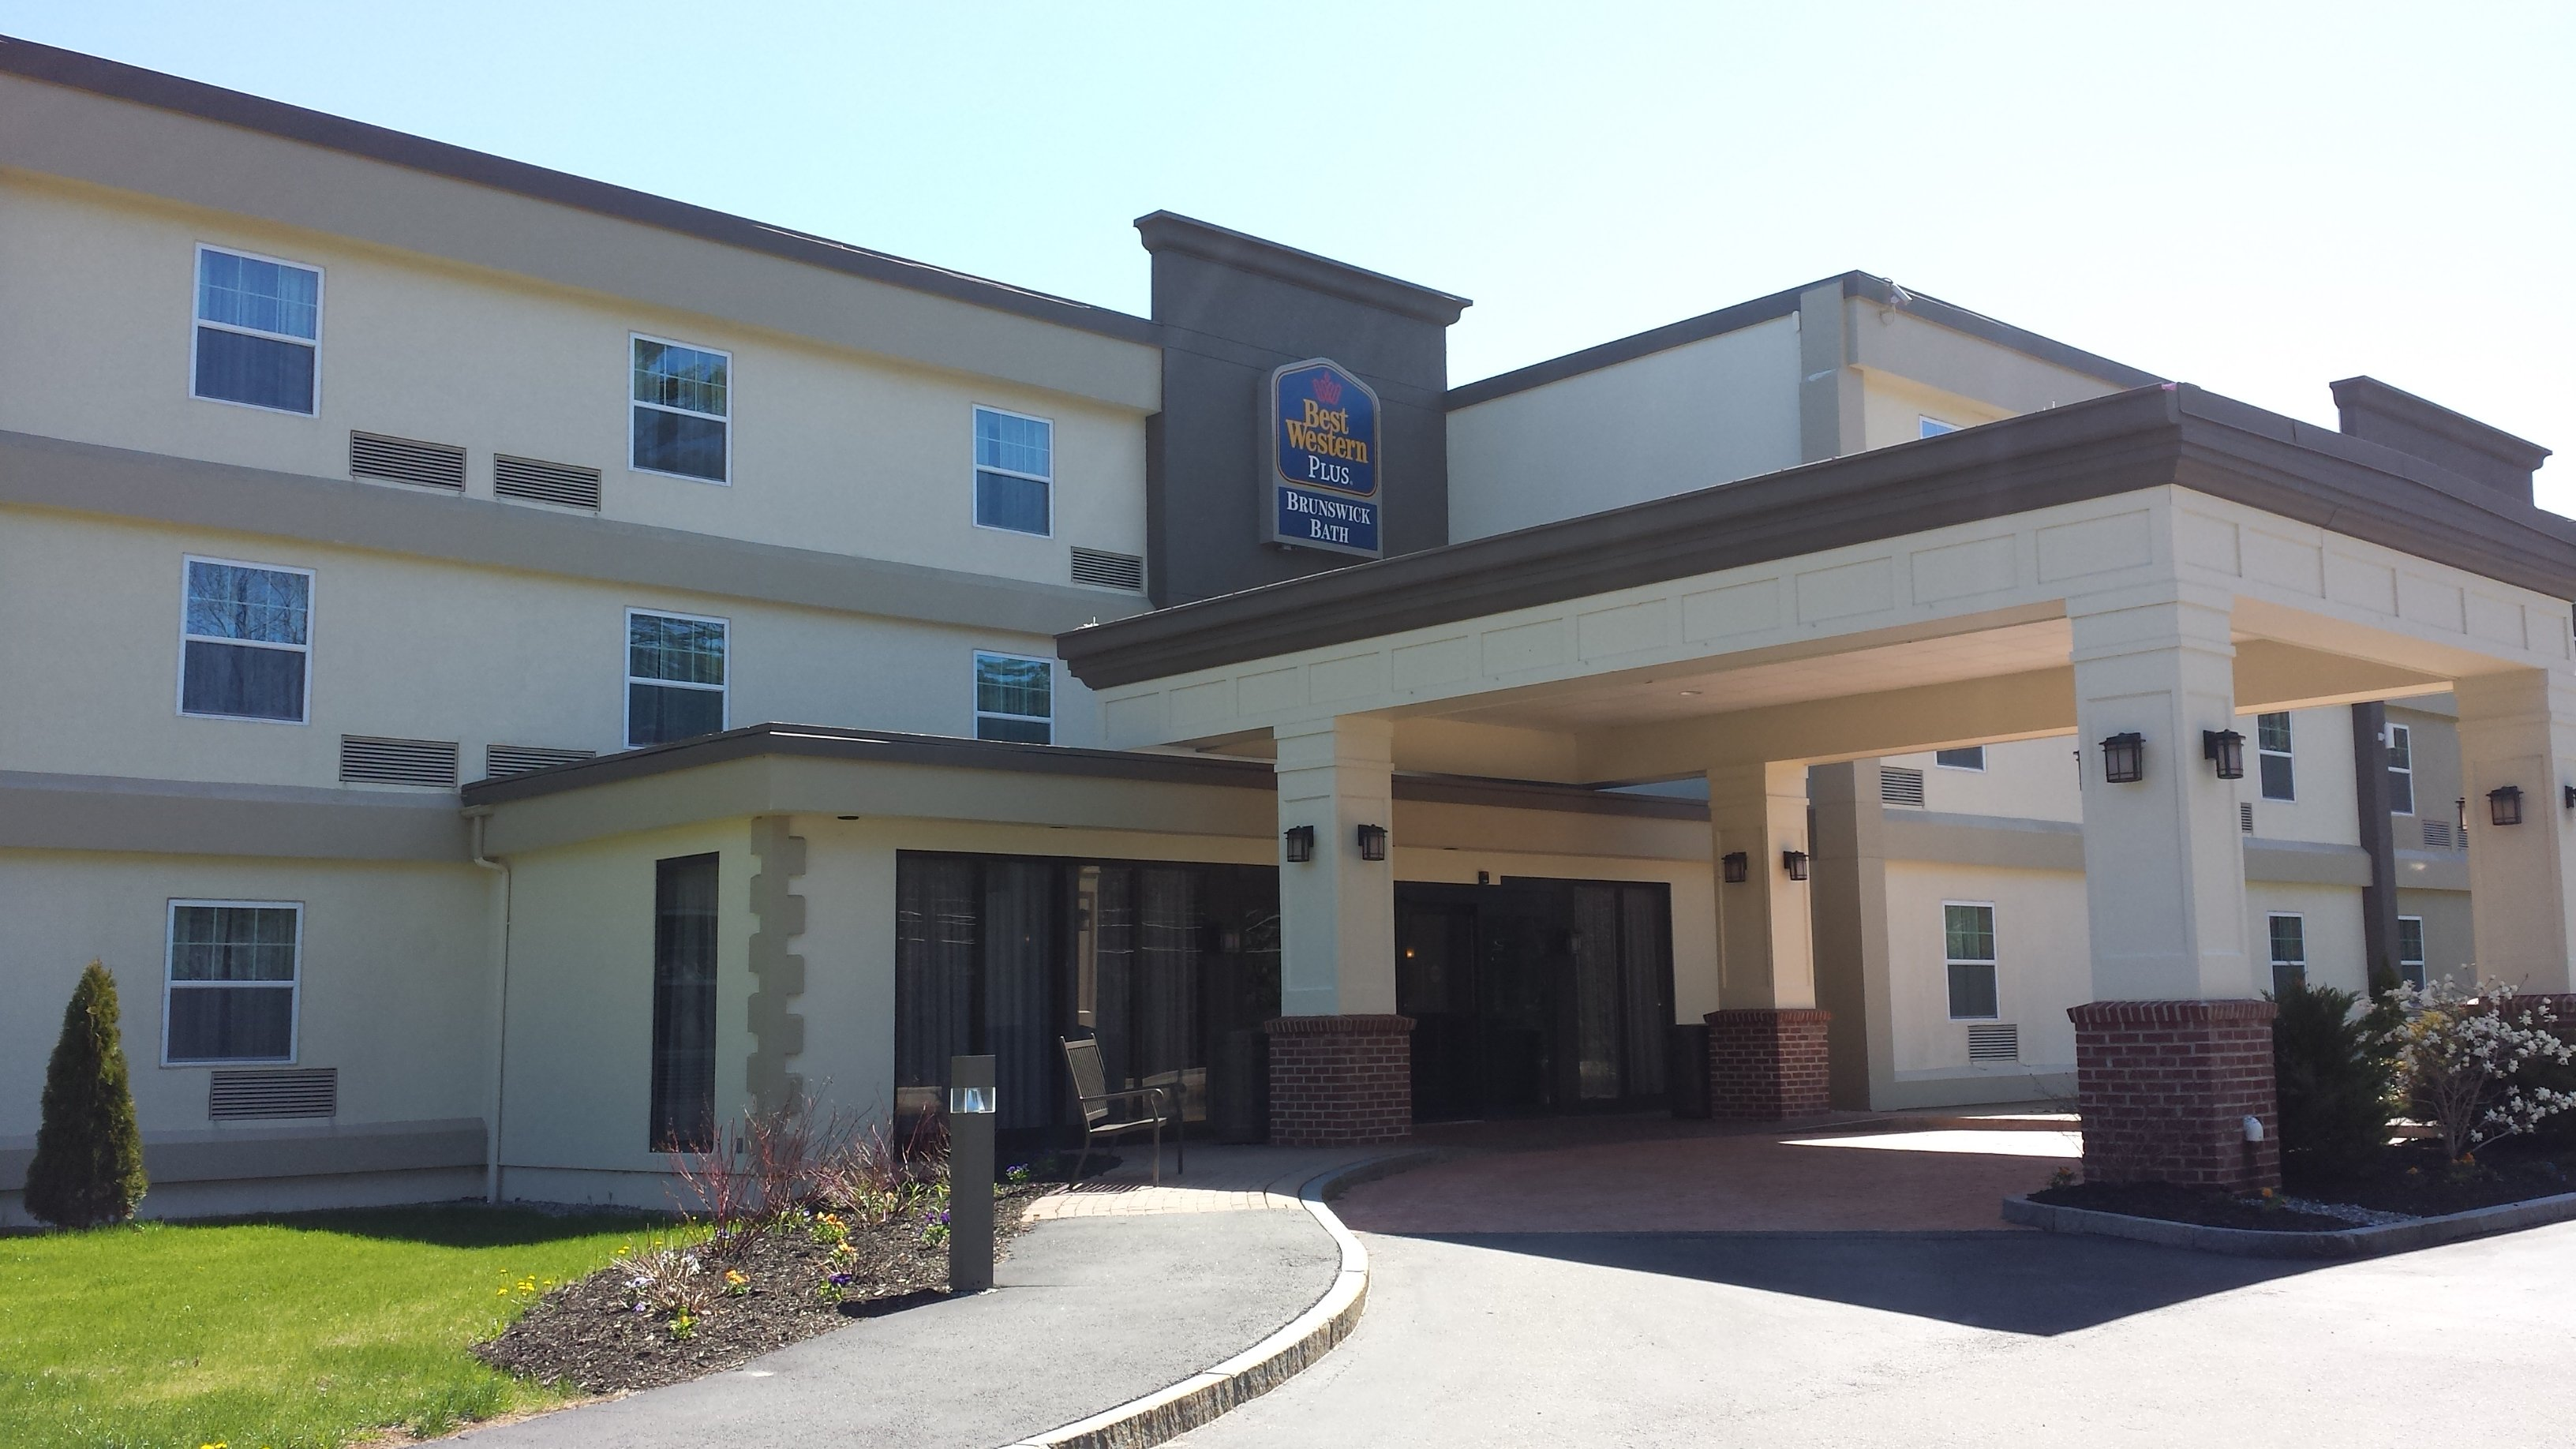 The Best Western Plus Brunswick Bath Welcomes You!